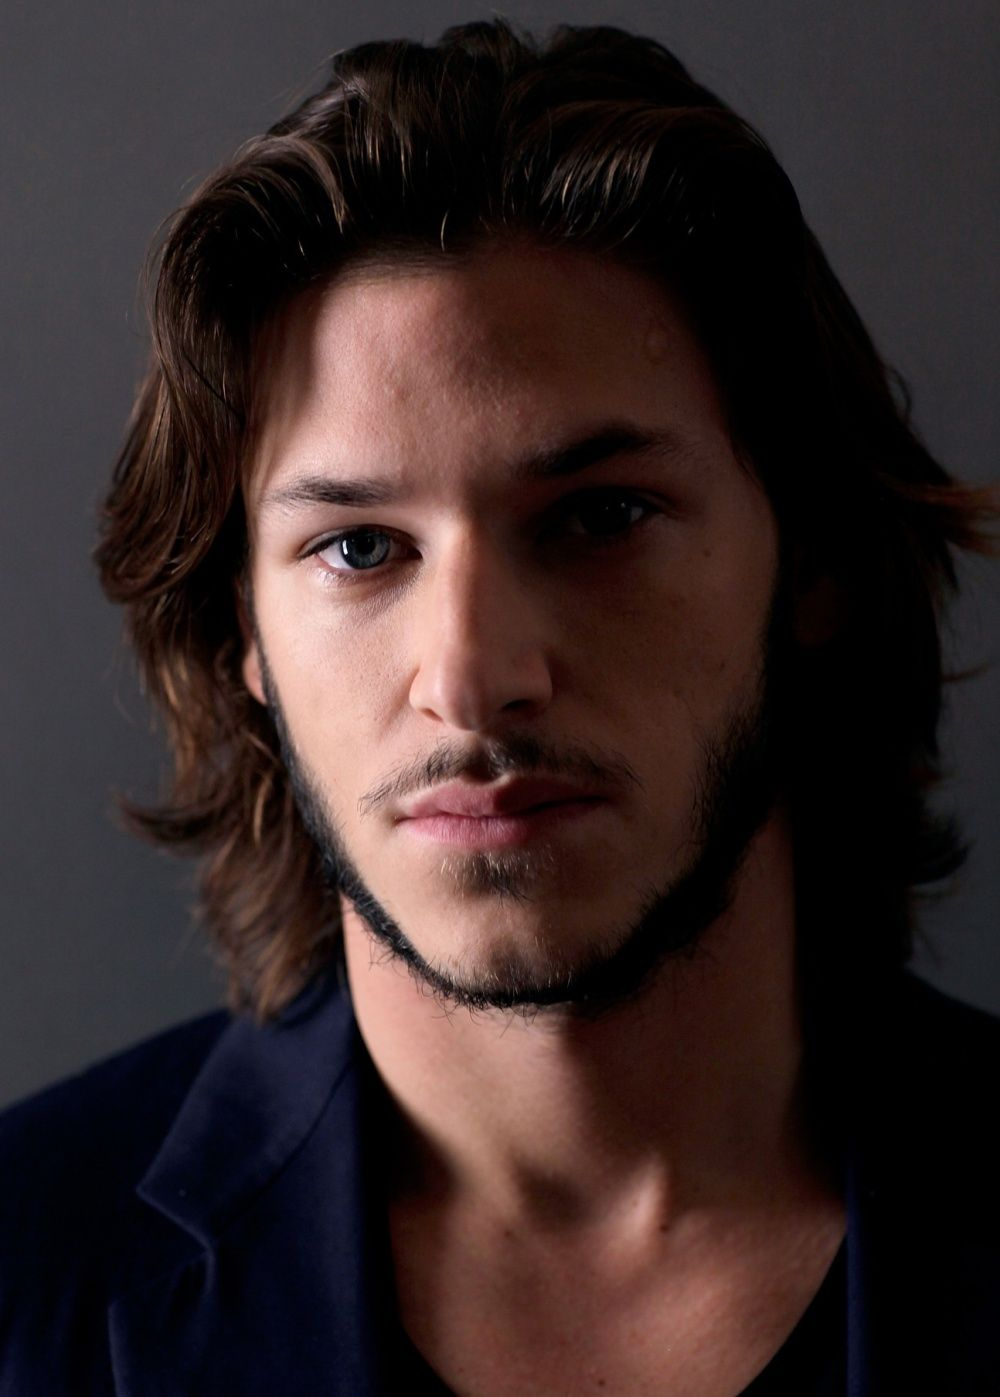 gaspard ulliel glassesgaspard ulliel instagram, gaspard ulliel gif, gaspard ulliel chanel, gaspard ulliel tumblr, gaspard ulliel 2017, gaspard ulliel vk, gaspard ulliel son, gaspard ulliel gif hunt, gaspard ulliel height, gaspard ulliel 2016, gaspard ulliel young, gaspard ulliel interview, gaspard ulliel film, gaspard ulliel haircut, gaspard ulliel png, gaspard ulliel who dated who, gaspard ulliel photo, gaspard ulliel fan, gaspard ulliel girl, gaspard ulliel glasses